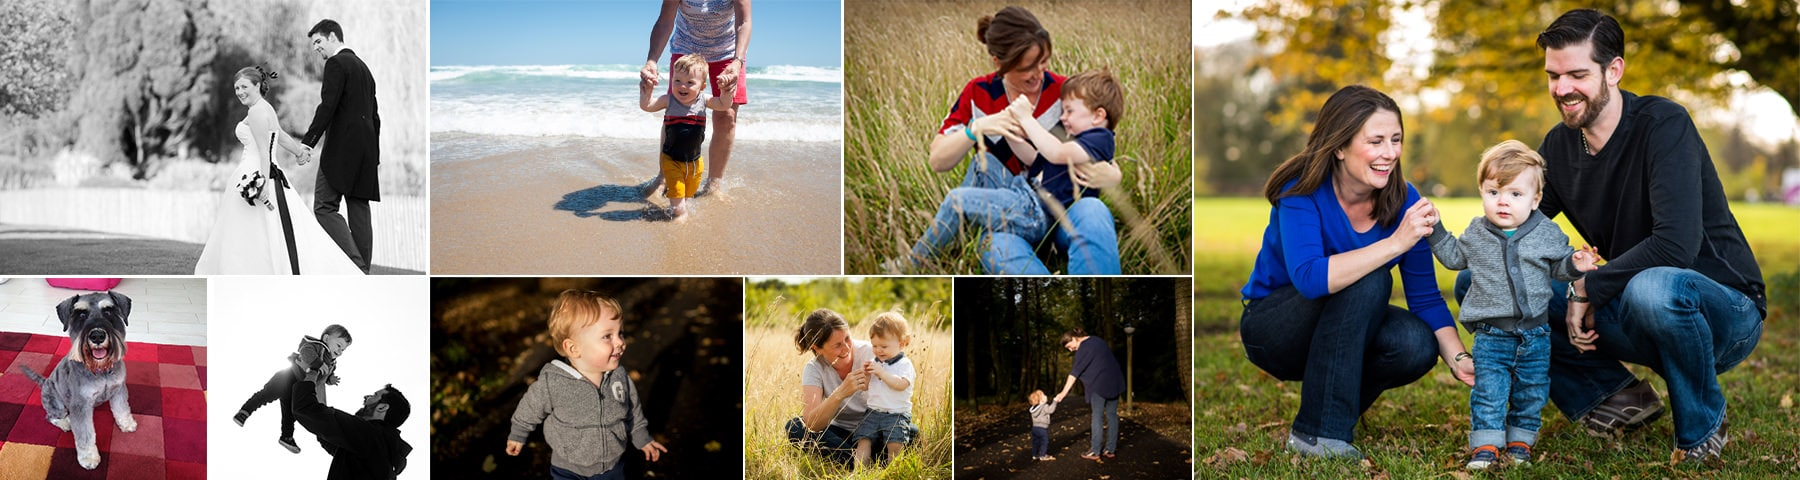 St Albans family photographer photo collage